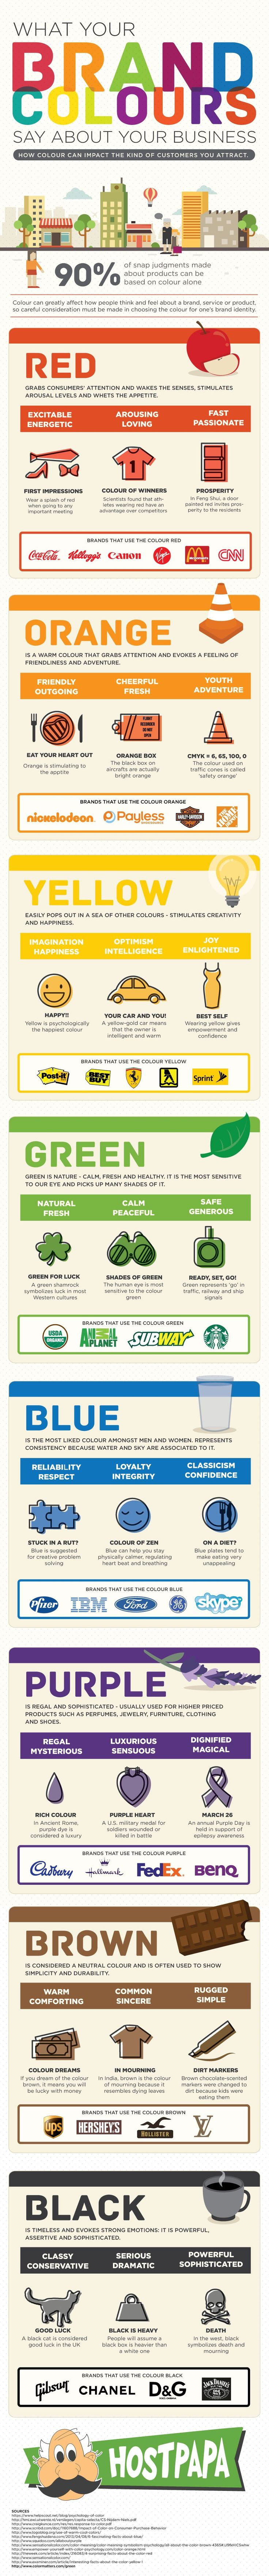 What Do Your Brand Colours Say About Your Business? - #infographic